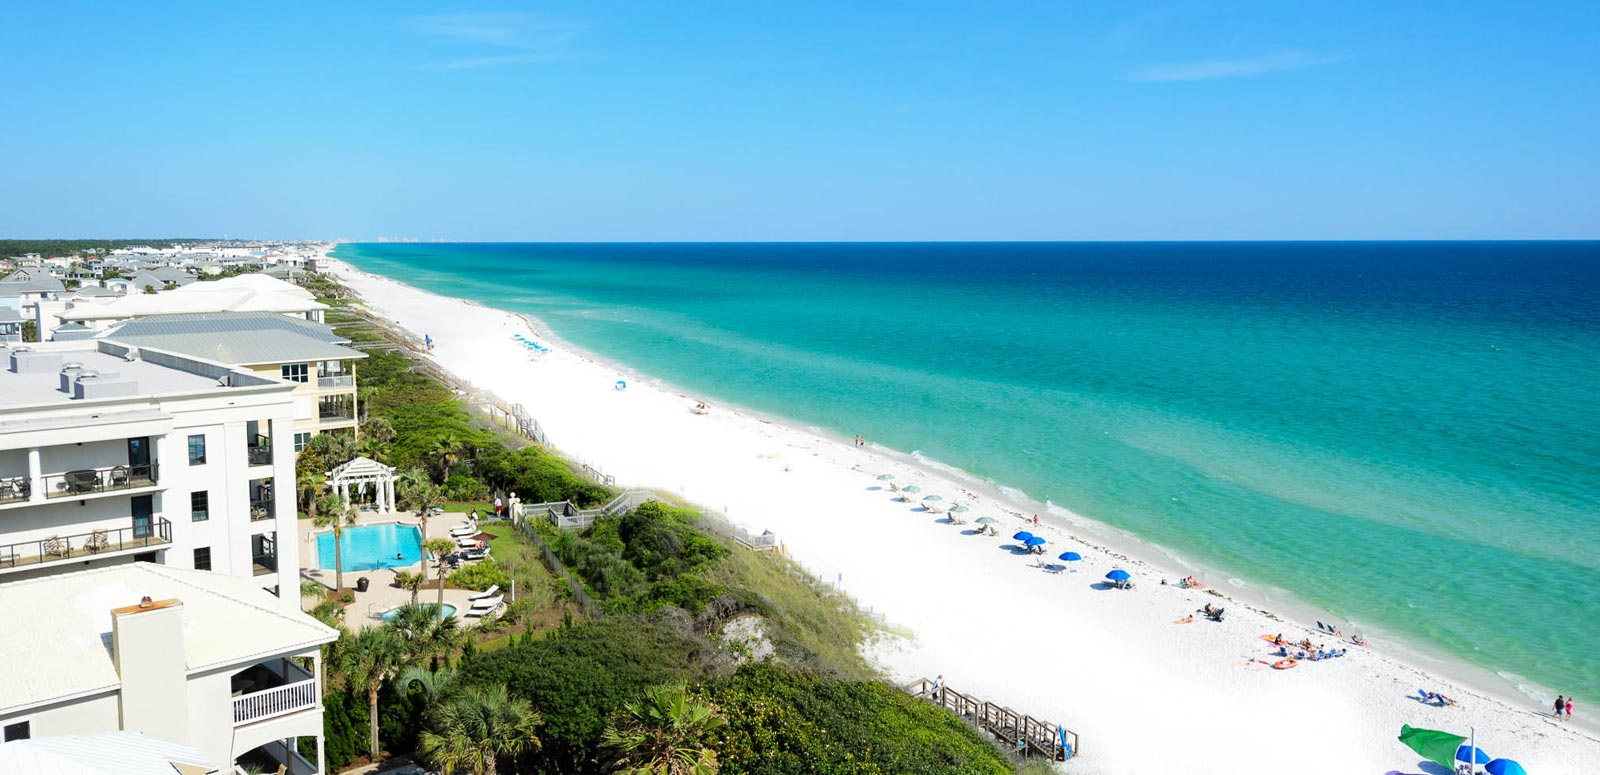 Balcony view of the beach and Gulf from our Santa Rosa Beach condo rentals